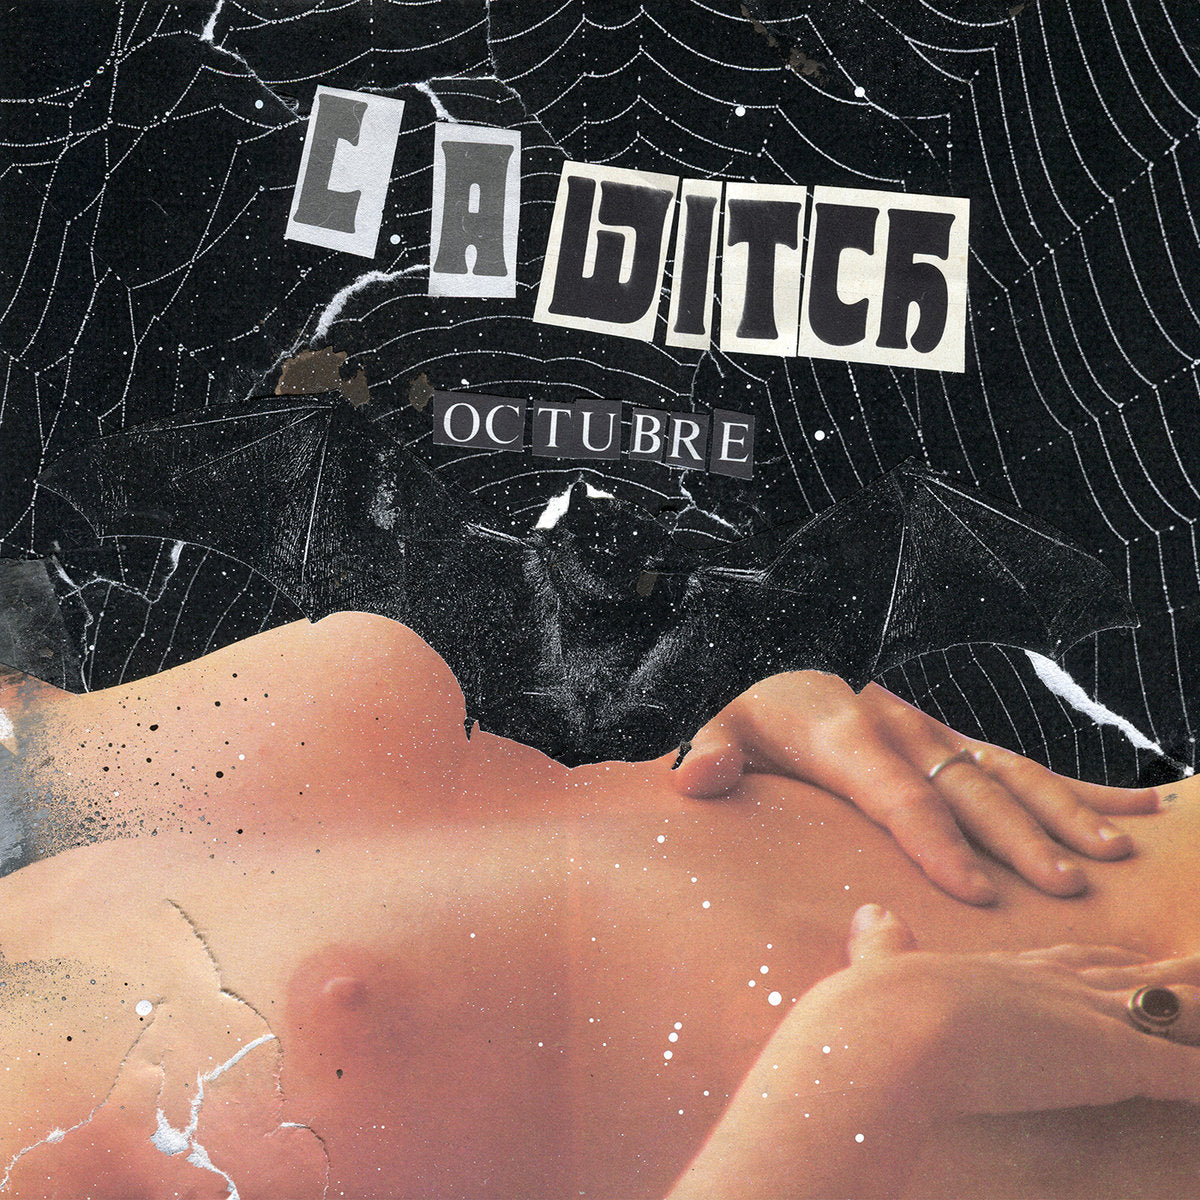 L.A. Witch - Octubre LP (Ltd Halloween Orange Vinyl Edition)